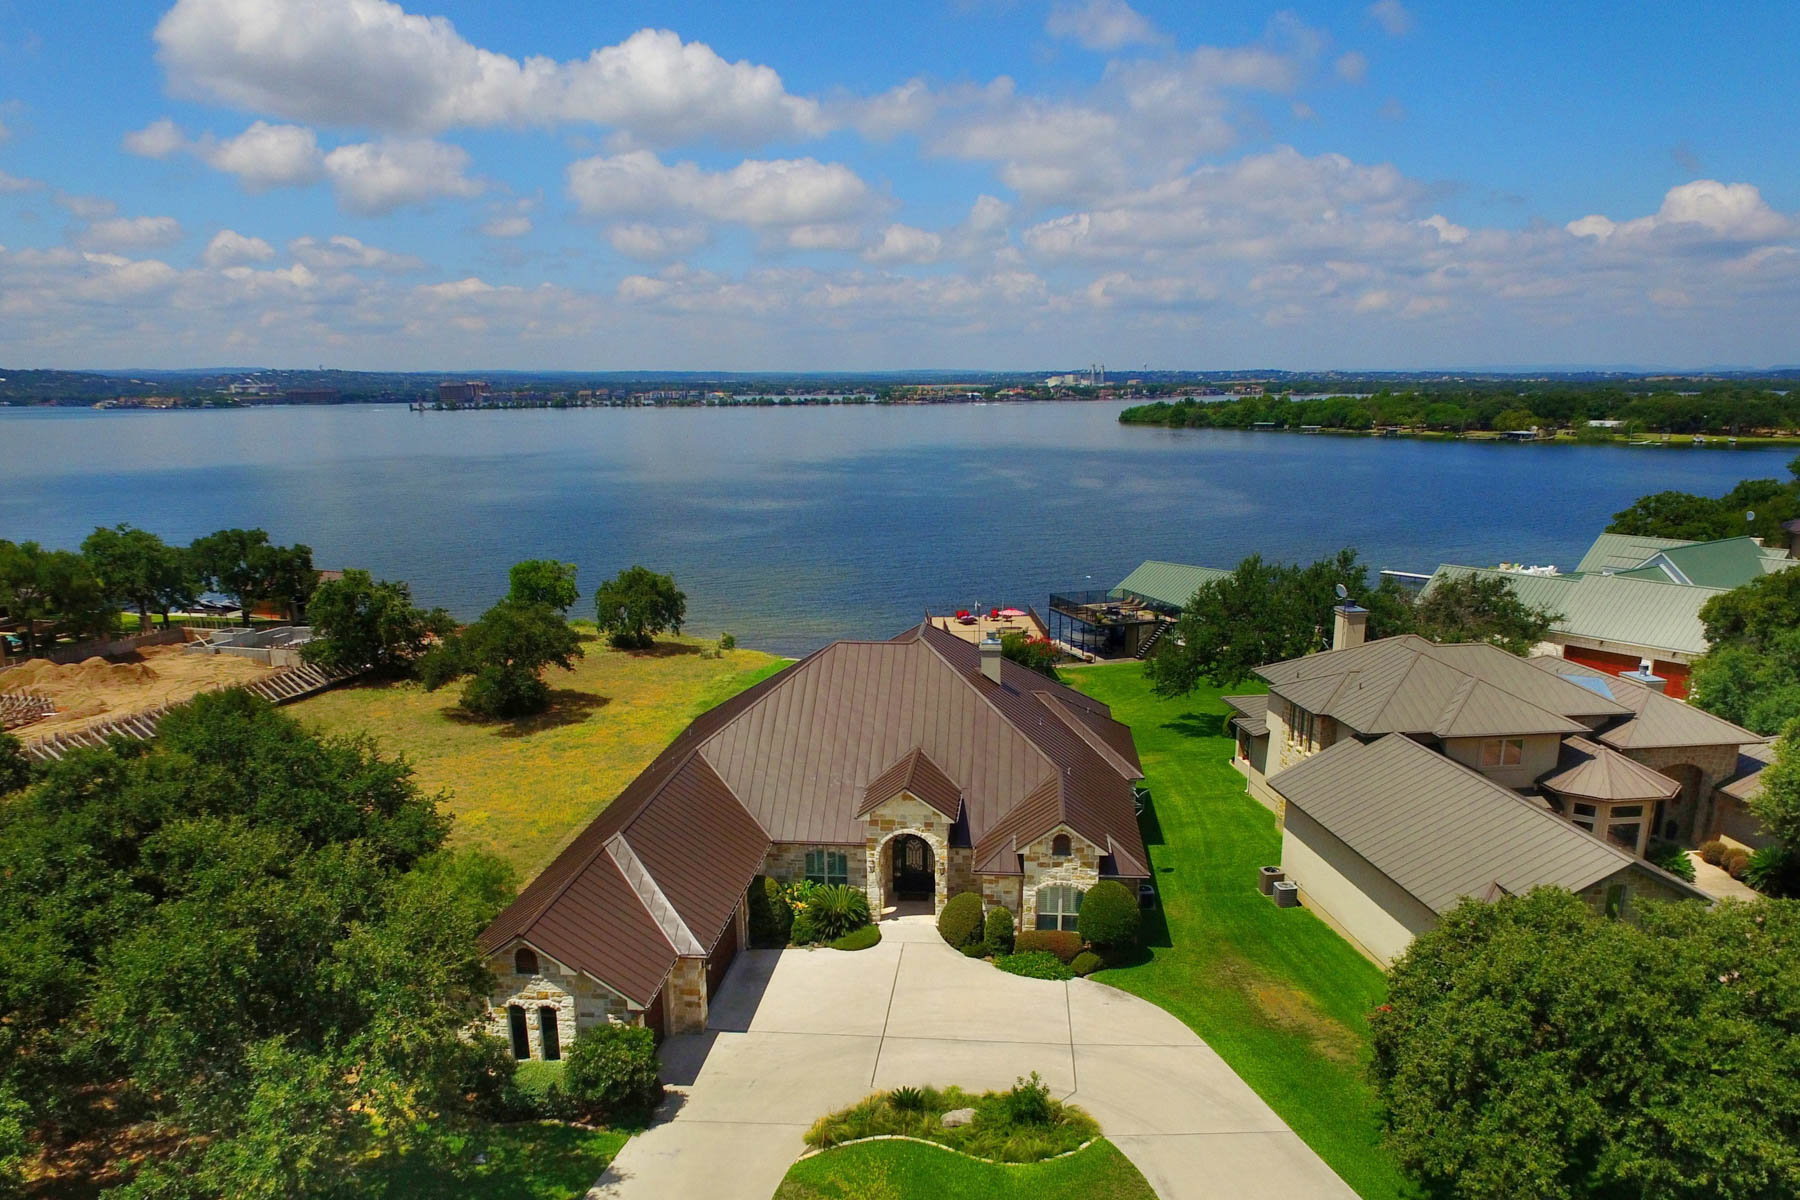 Moradia para Venda às Absolute Paradise on Lake LBJ 125 Wilderness Cv Marble Falls, Texas, 78654 Estados Unidos